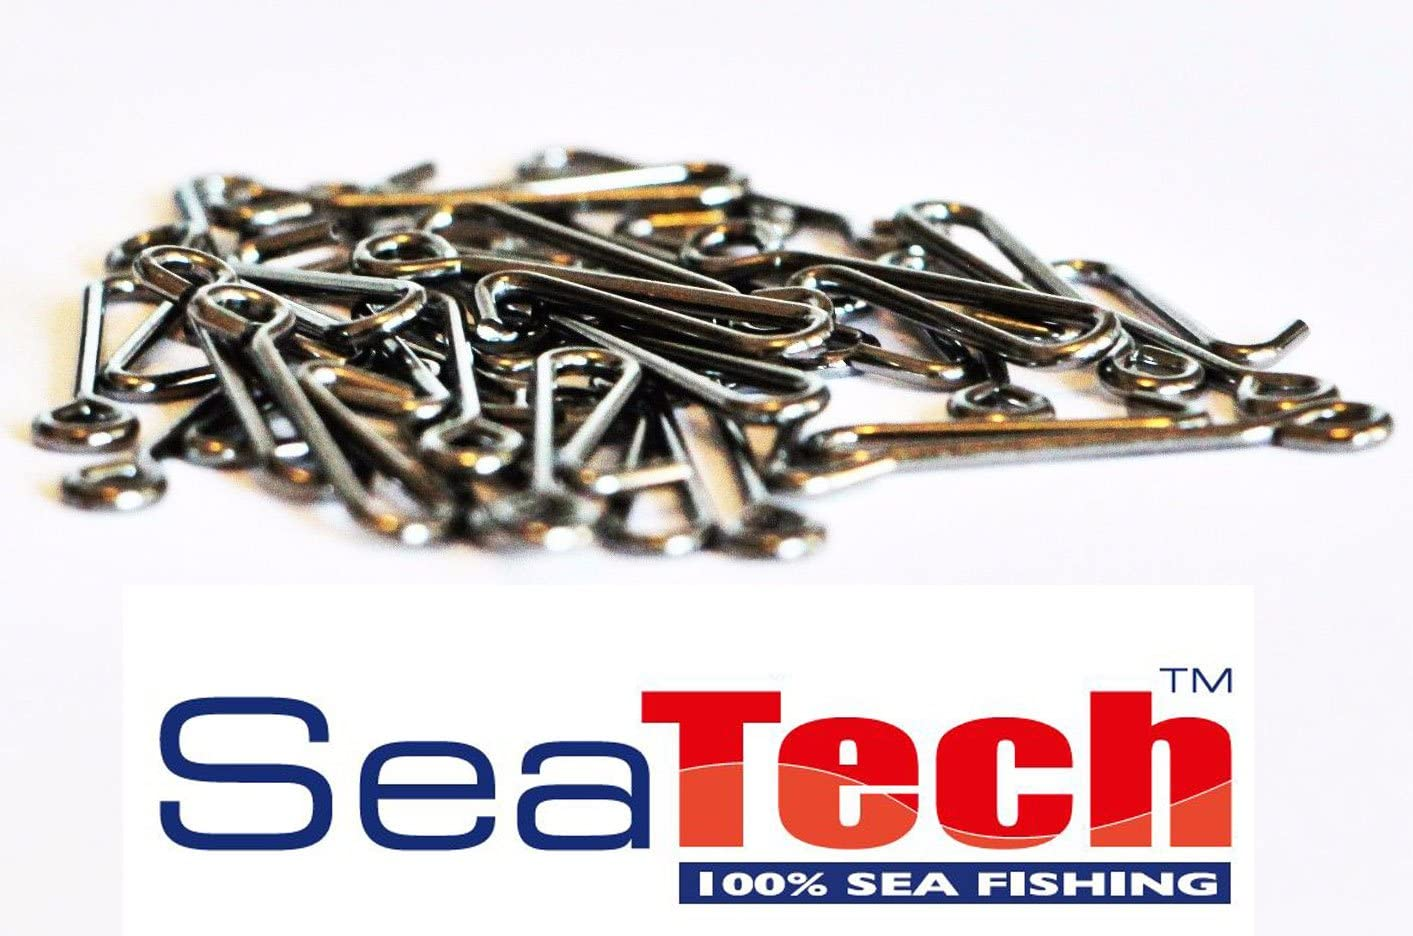 LEAD LINK CLIPS LINK-RIG CLIPS complete with SWIVELS SEA FISHING RIGS